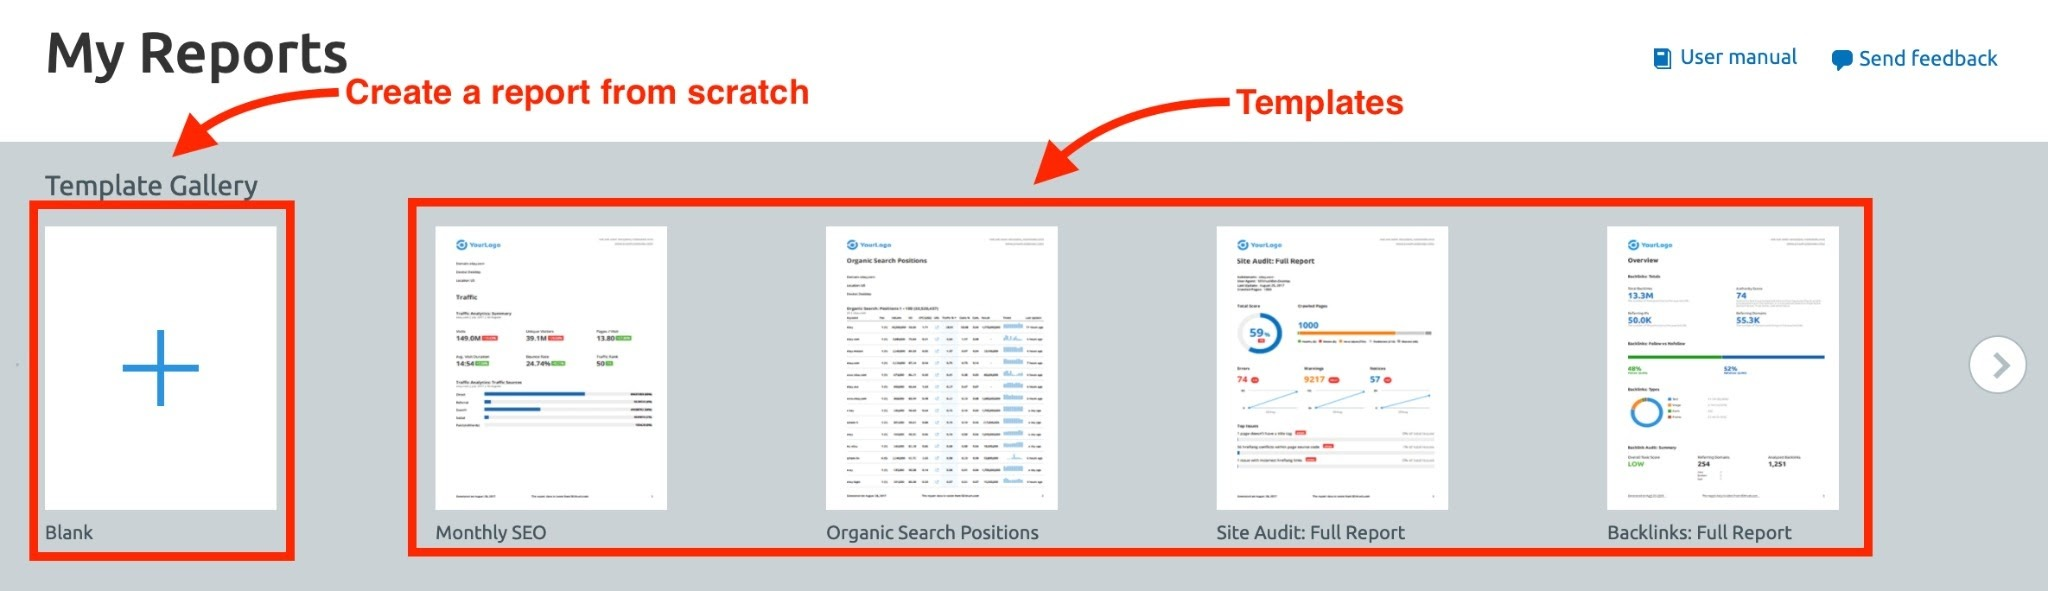 How to Onboard a New Client with Semrush image 2